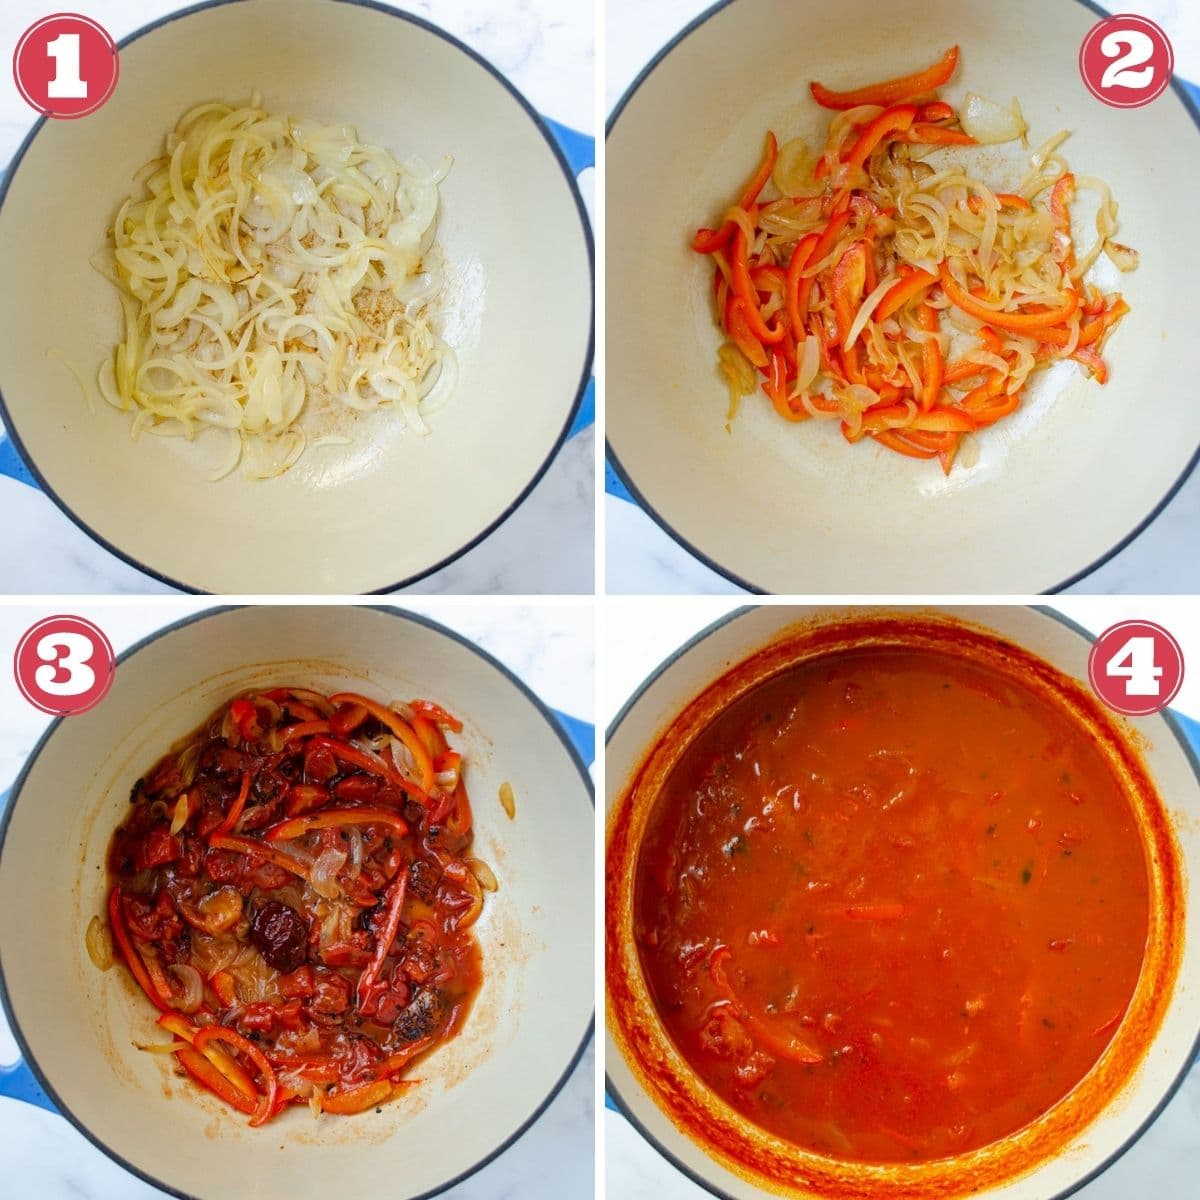 from left to right a a pot with onions cooking, a pot with onions and peppers cooking, a pot with onion, peppers, and chipotle cooking, broth added to the pot